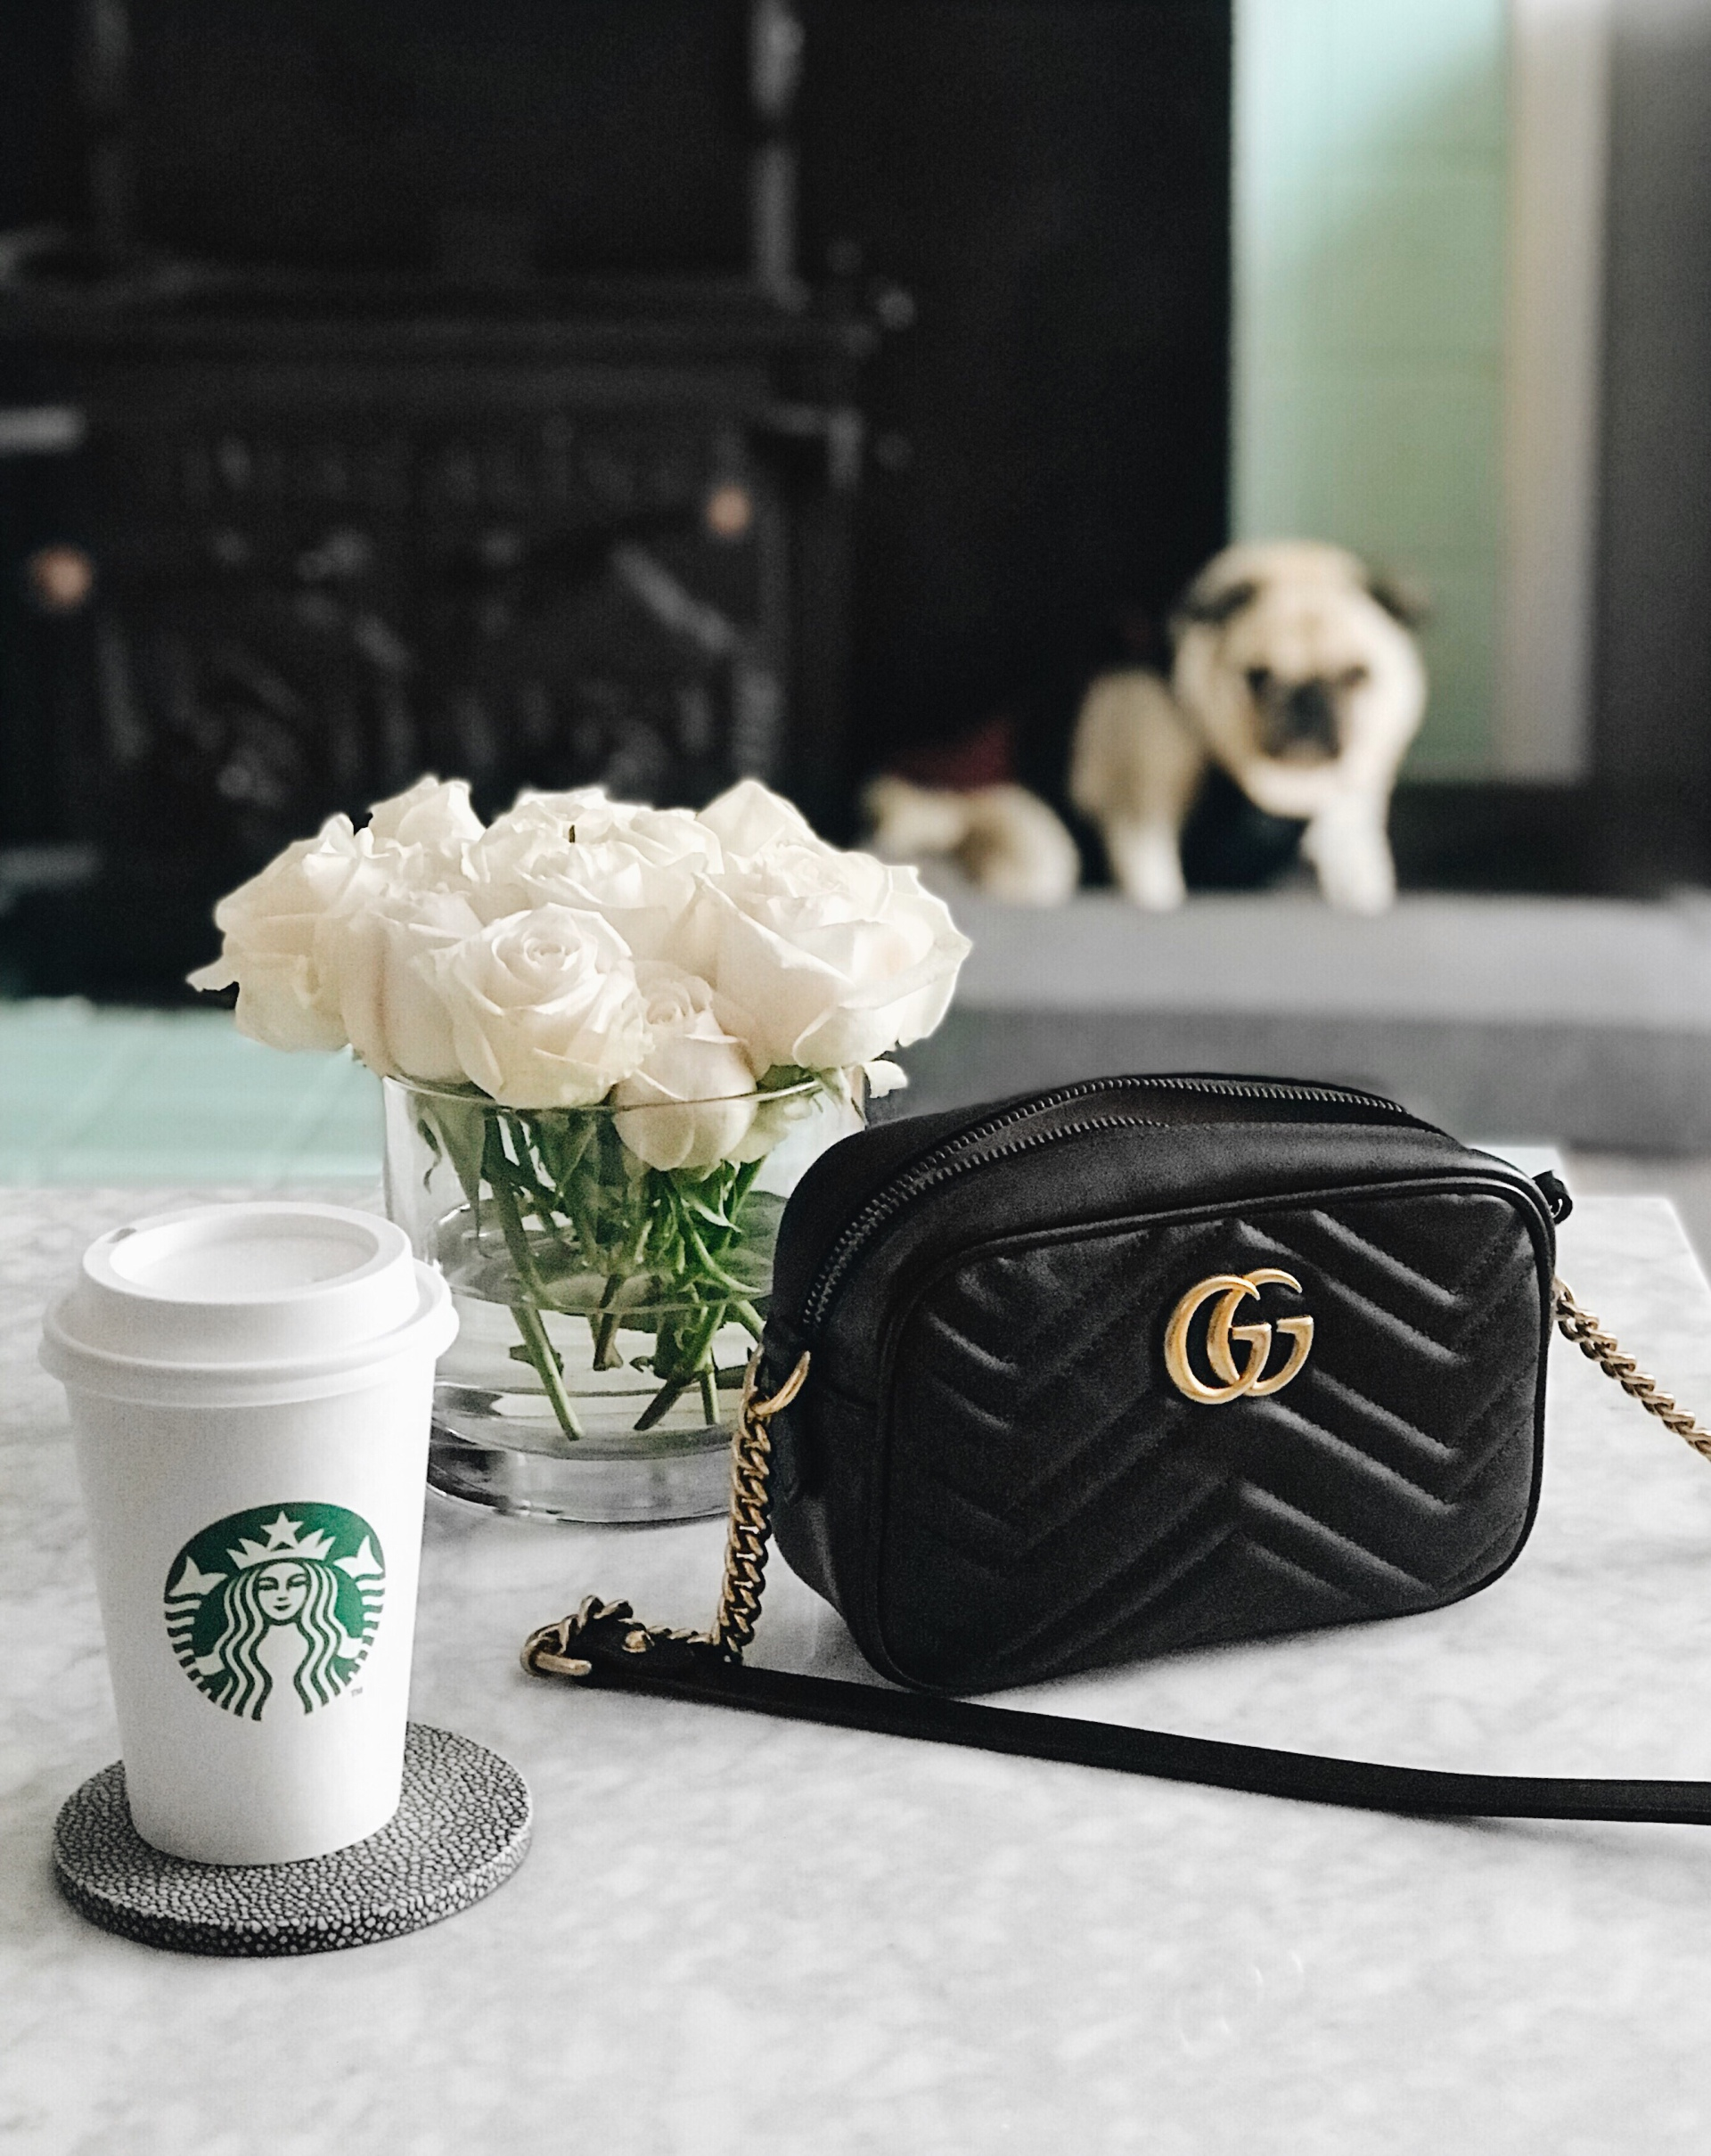 Starbucks coffee and Gucci Marmont handbag | CoffeeAndHandbags.com